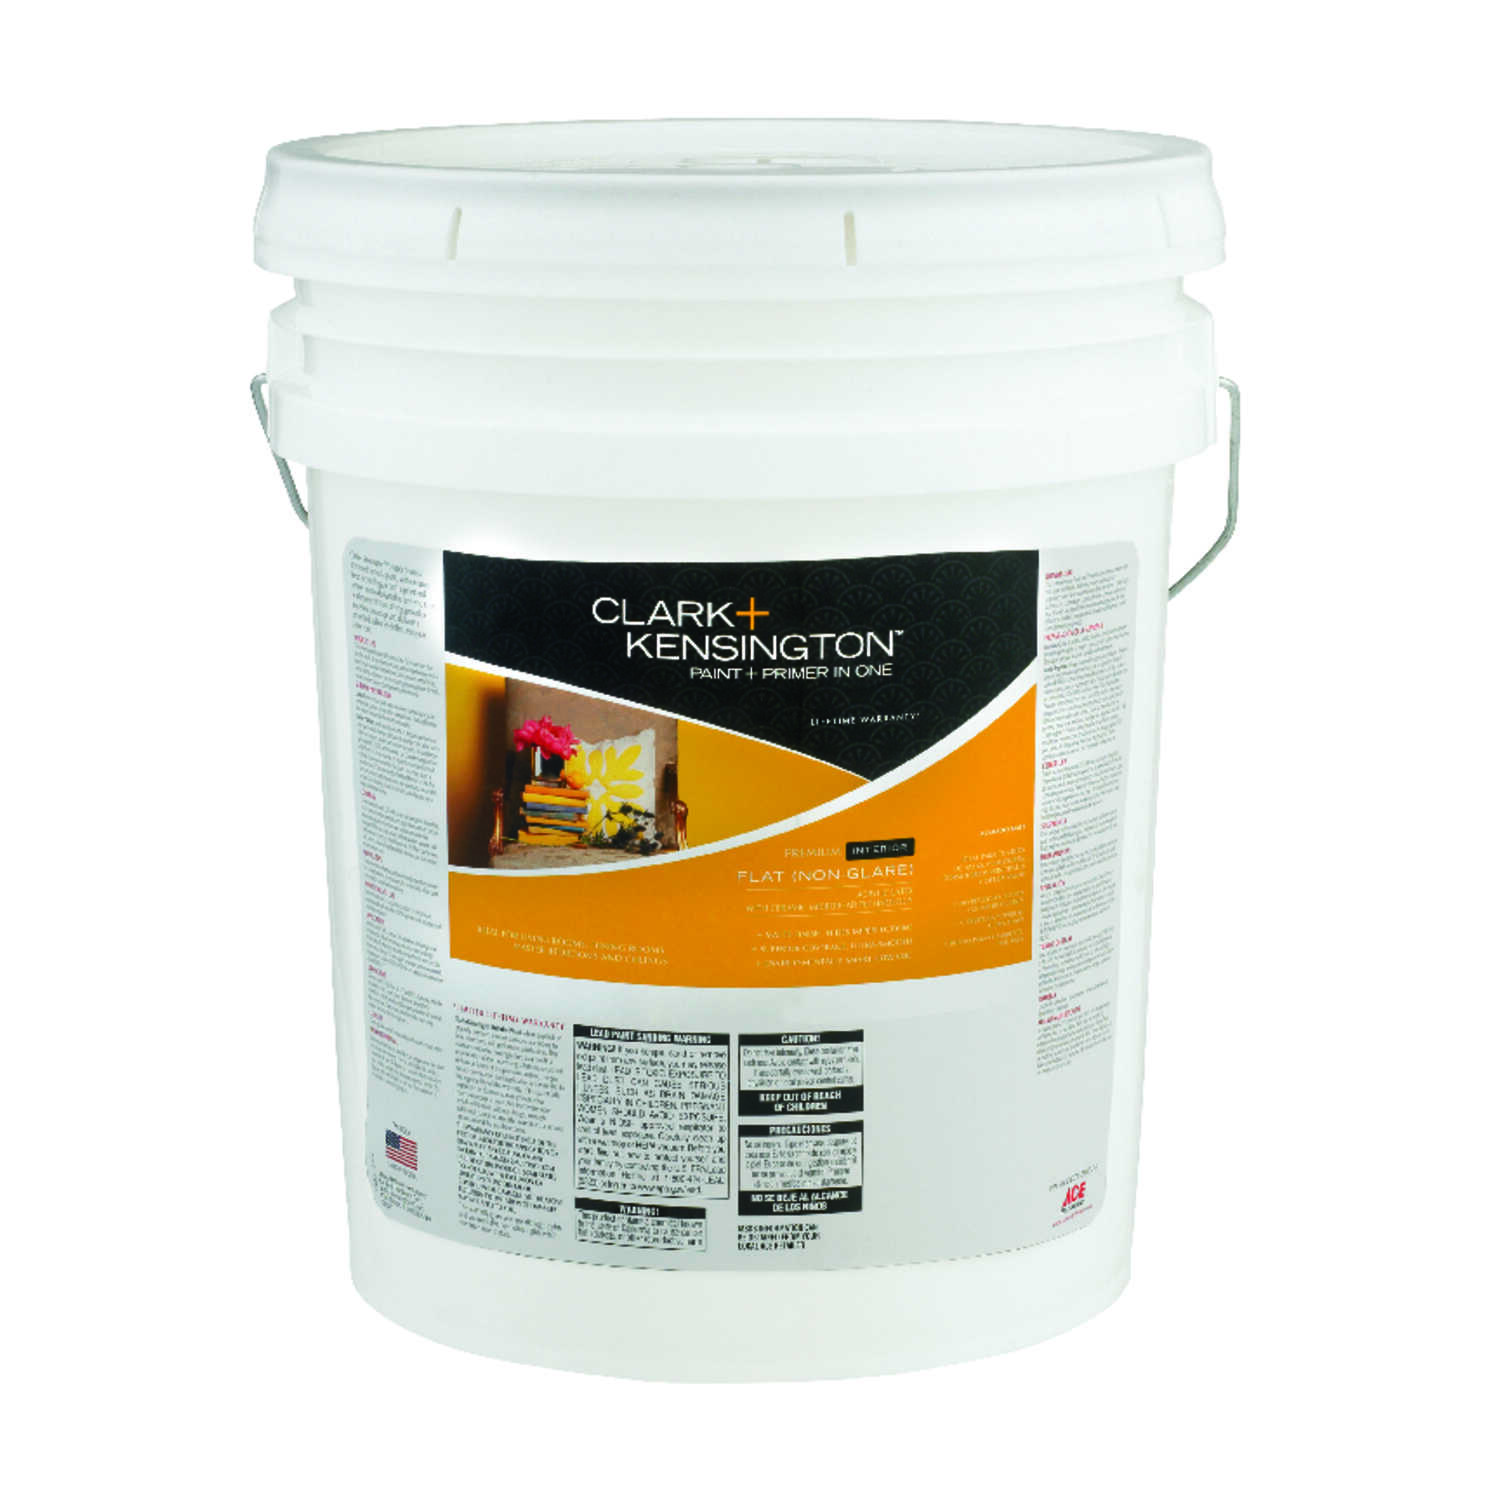 Clark+Kensington  Flat  Ultra White  Ultra White Base  Paint and Primer  Acrylic Latex  5 gal.